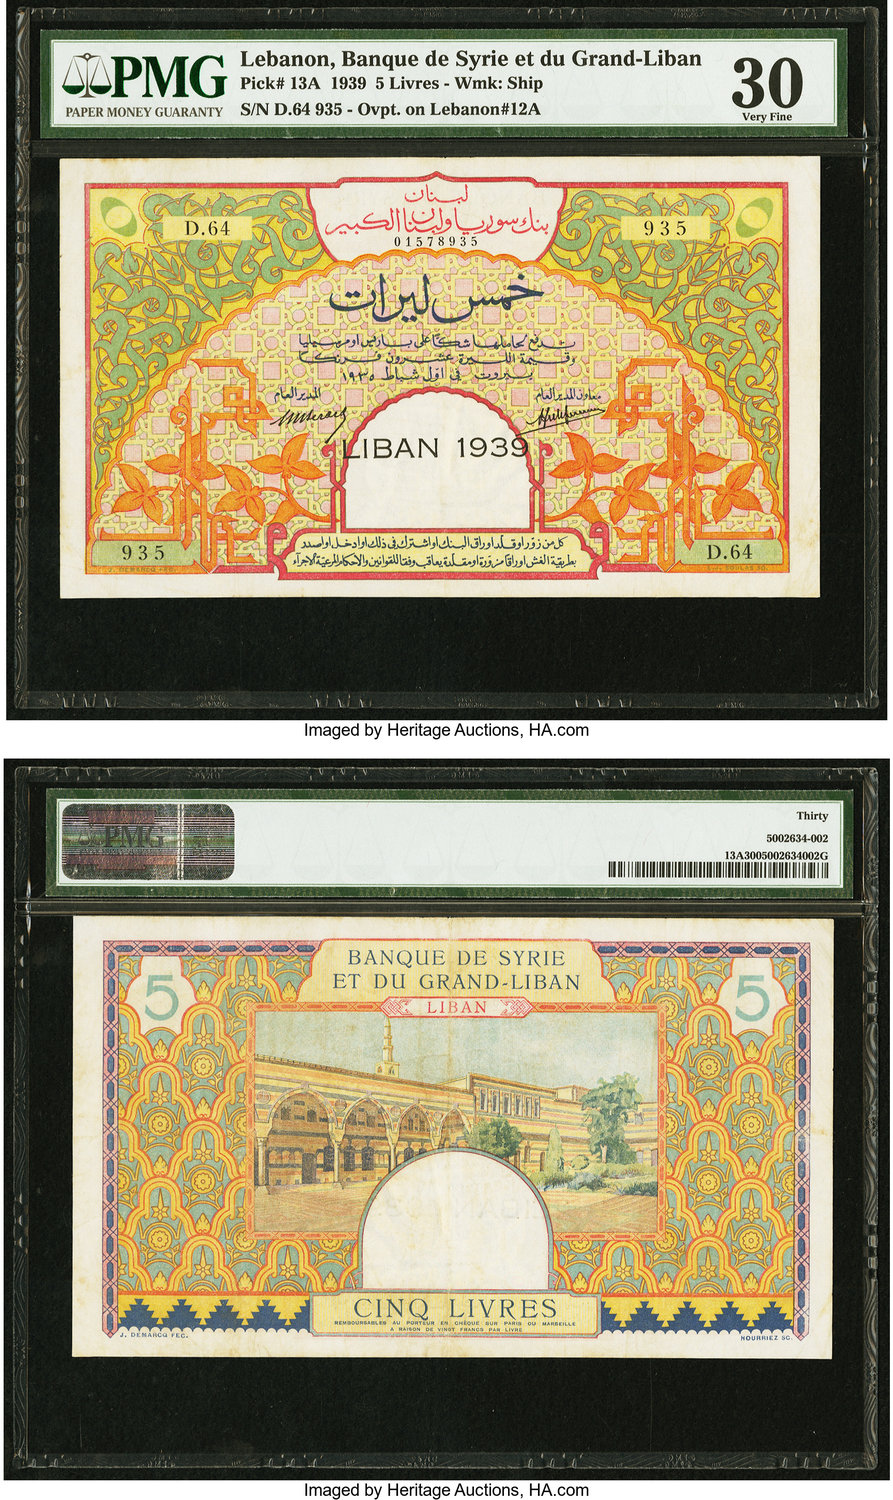 World Currency Lebanon Banque De Syrie Et Du Grand Liban 5 Livres 1939 Pick 13a A Very Bright Example Of This Elusive